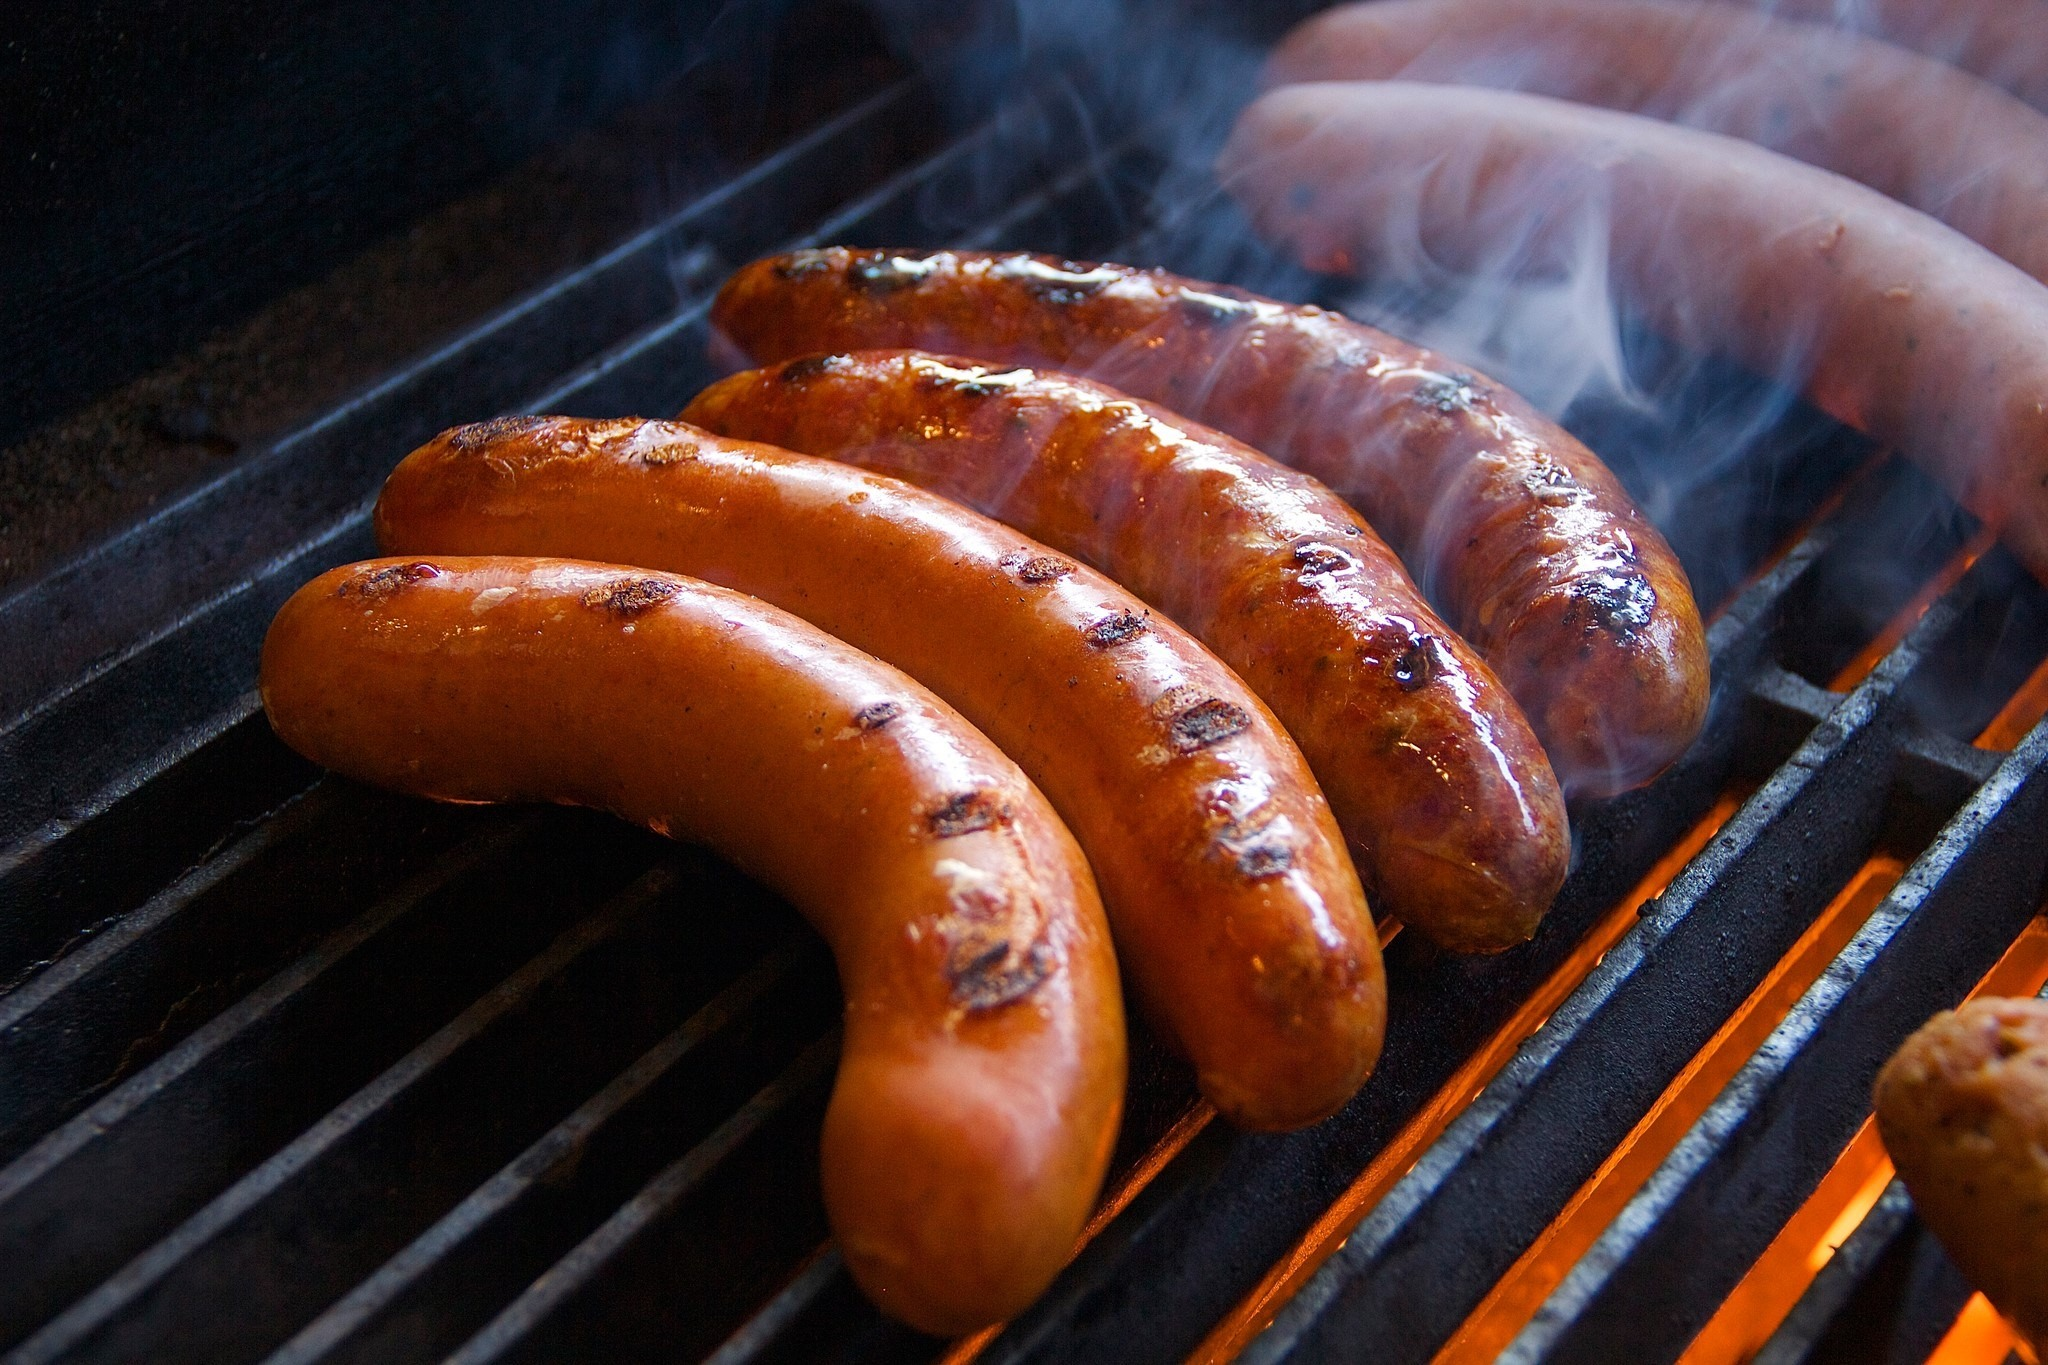 sausage on grill.jpg